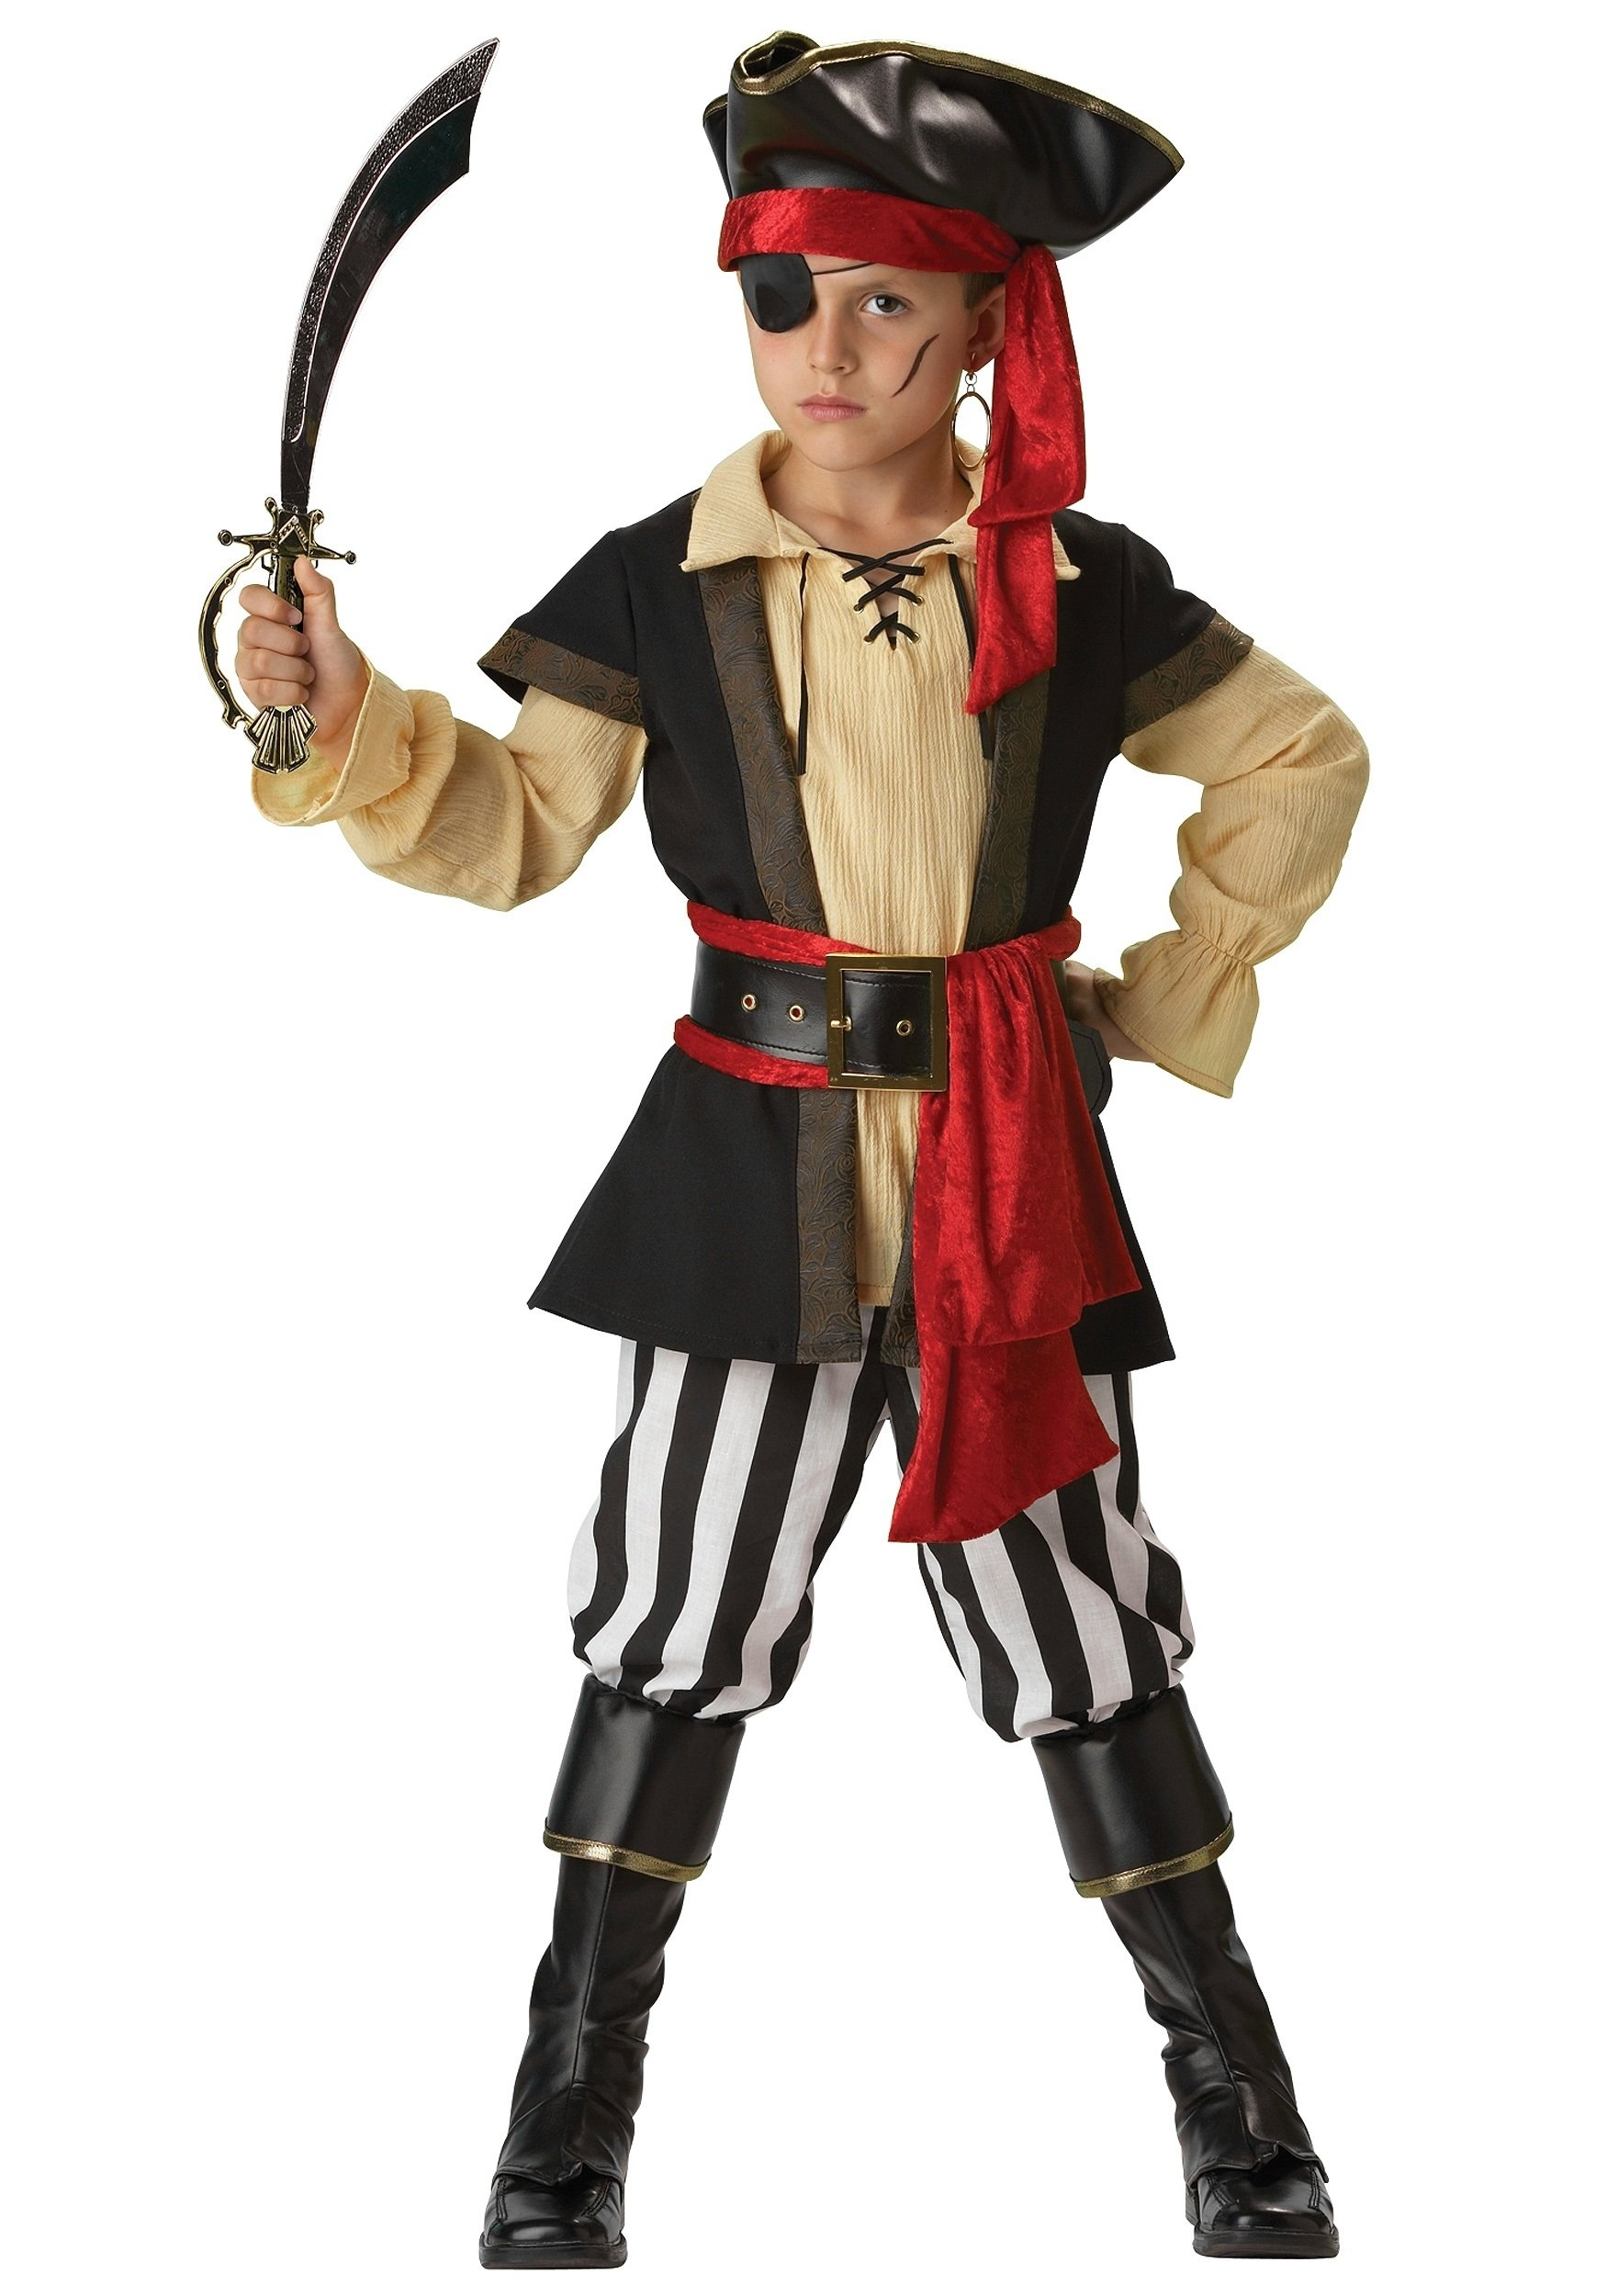 10 Famous Ideas For Halloween Costumes For Kids kids scoundrel pirate costume 2 2021